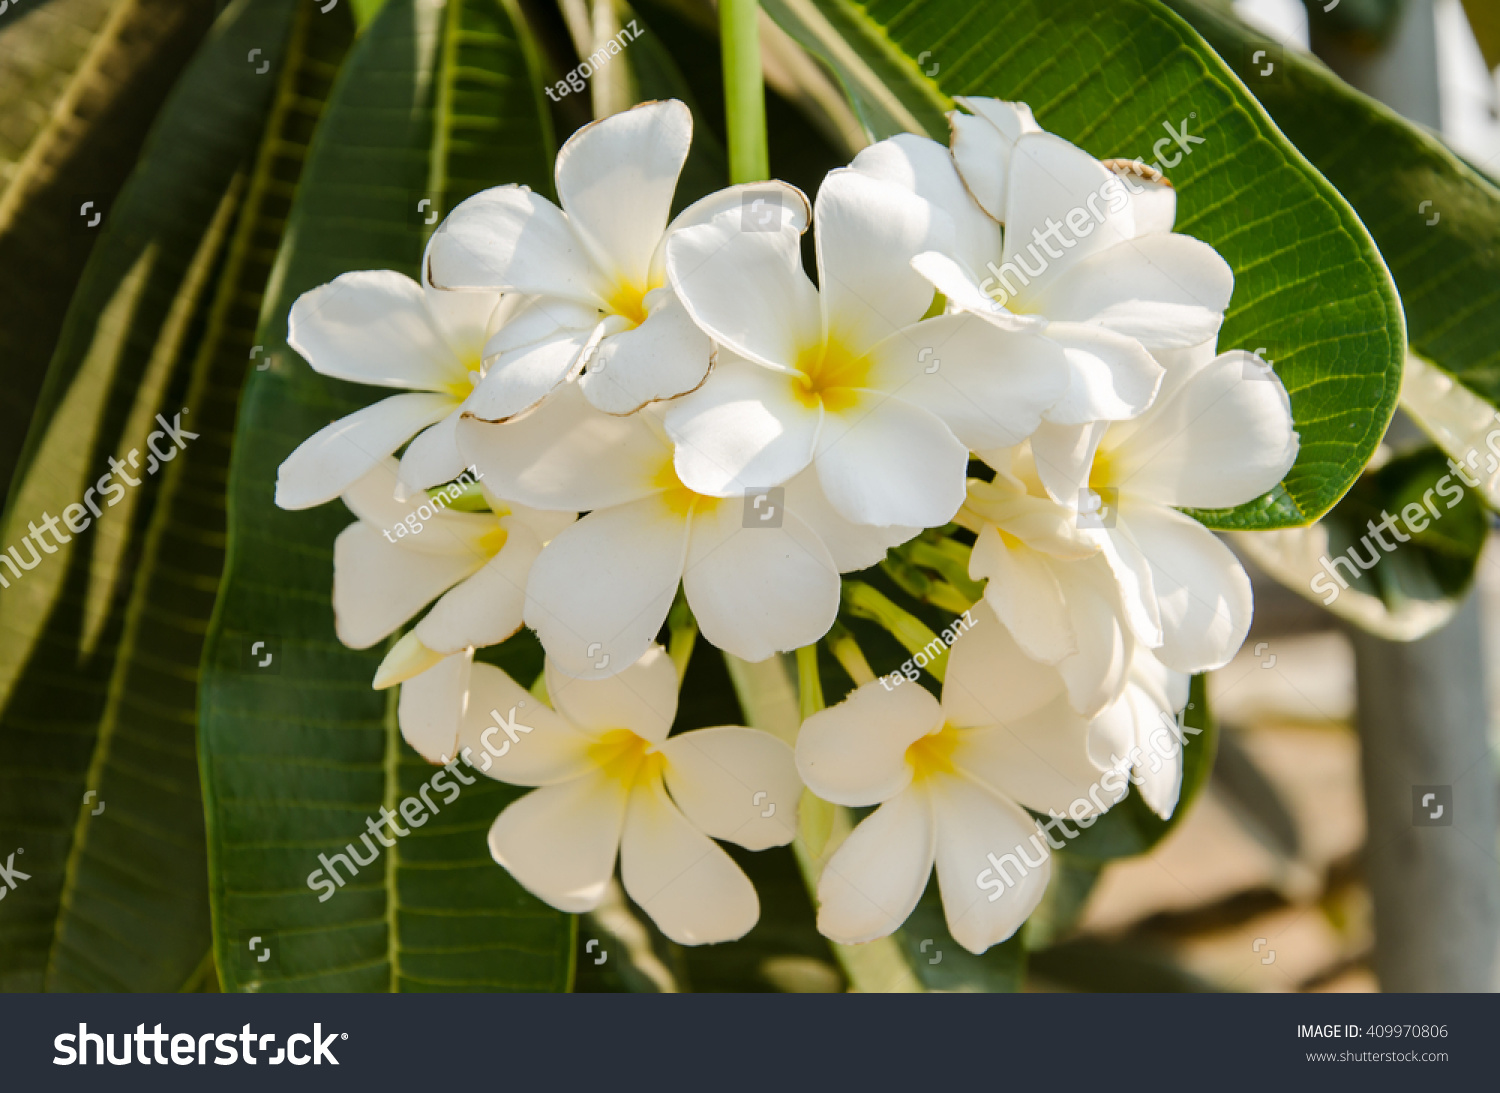 White And Yellow Plumeria Frangipani Flowers With Leaves Background